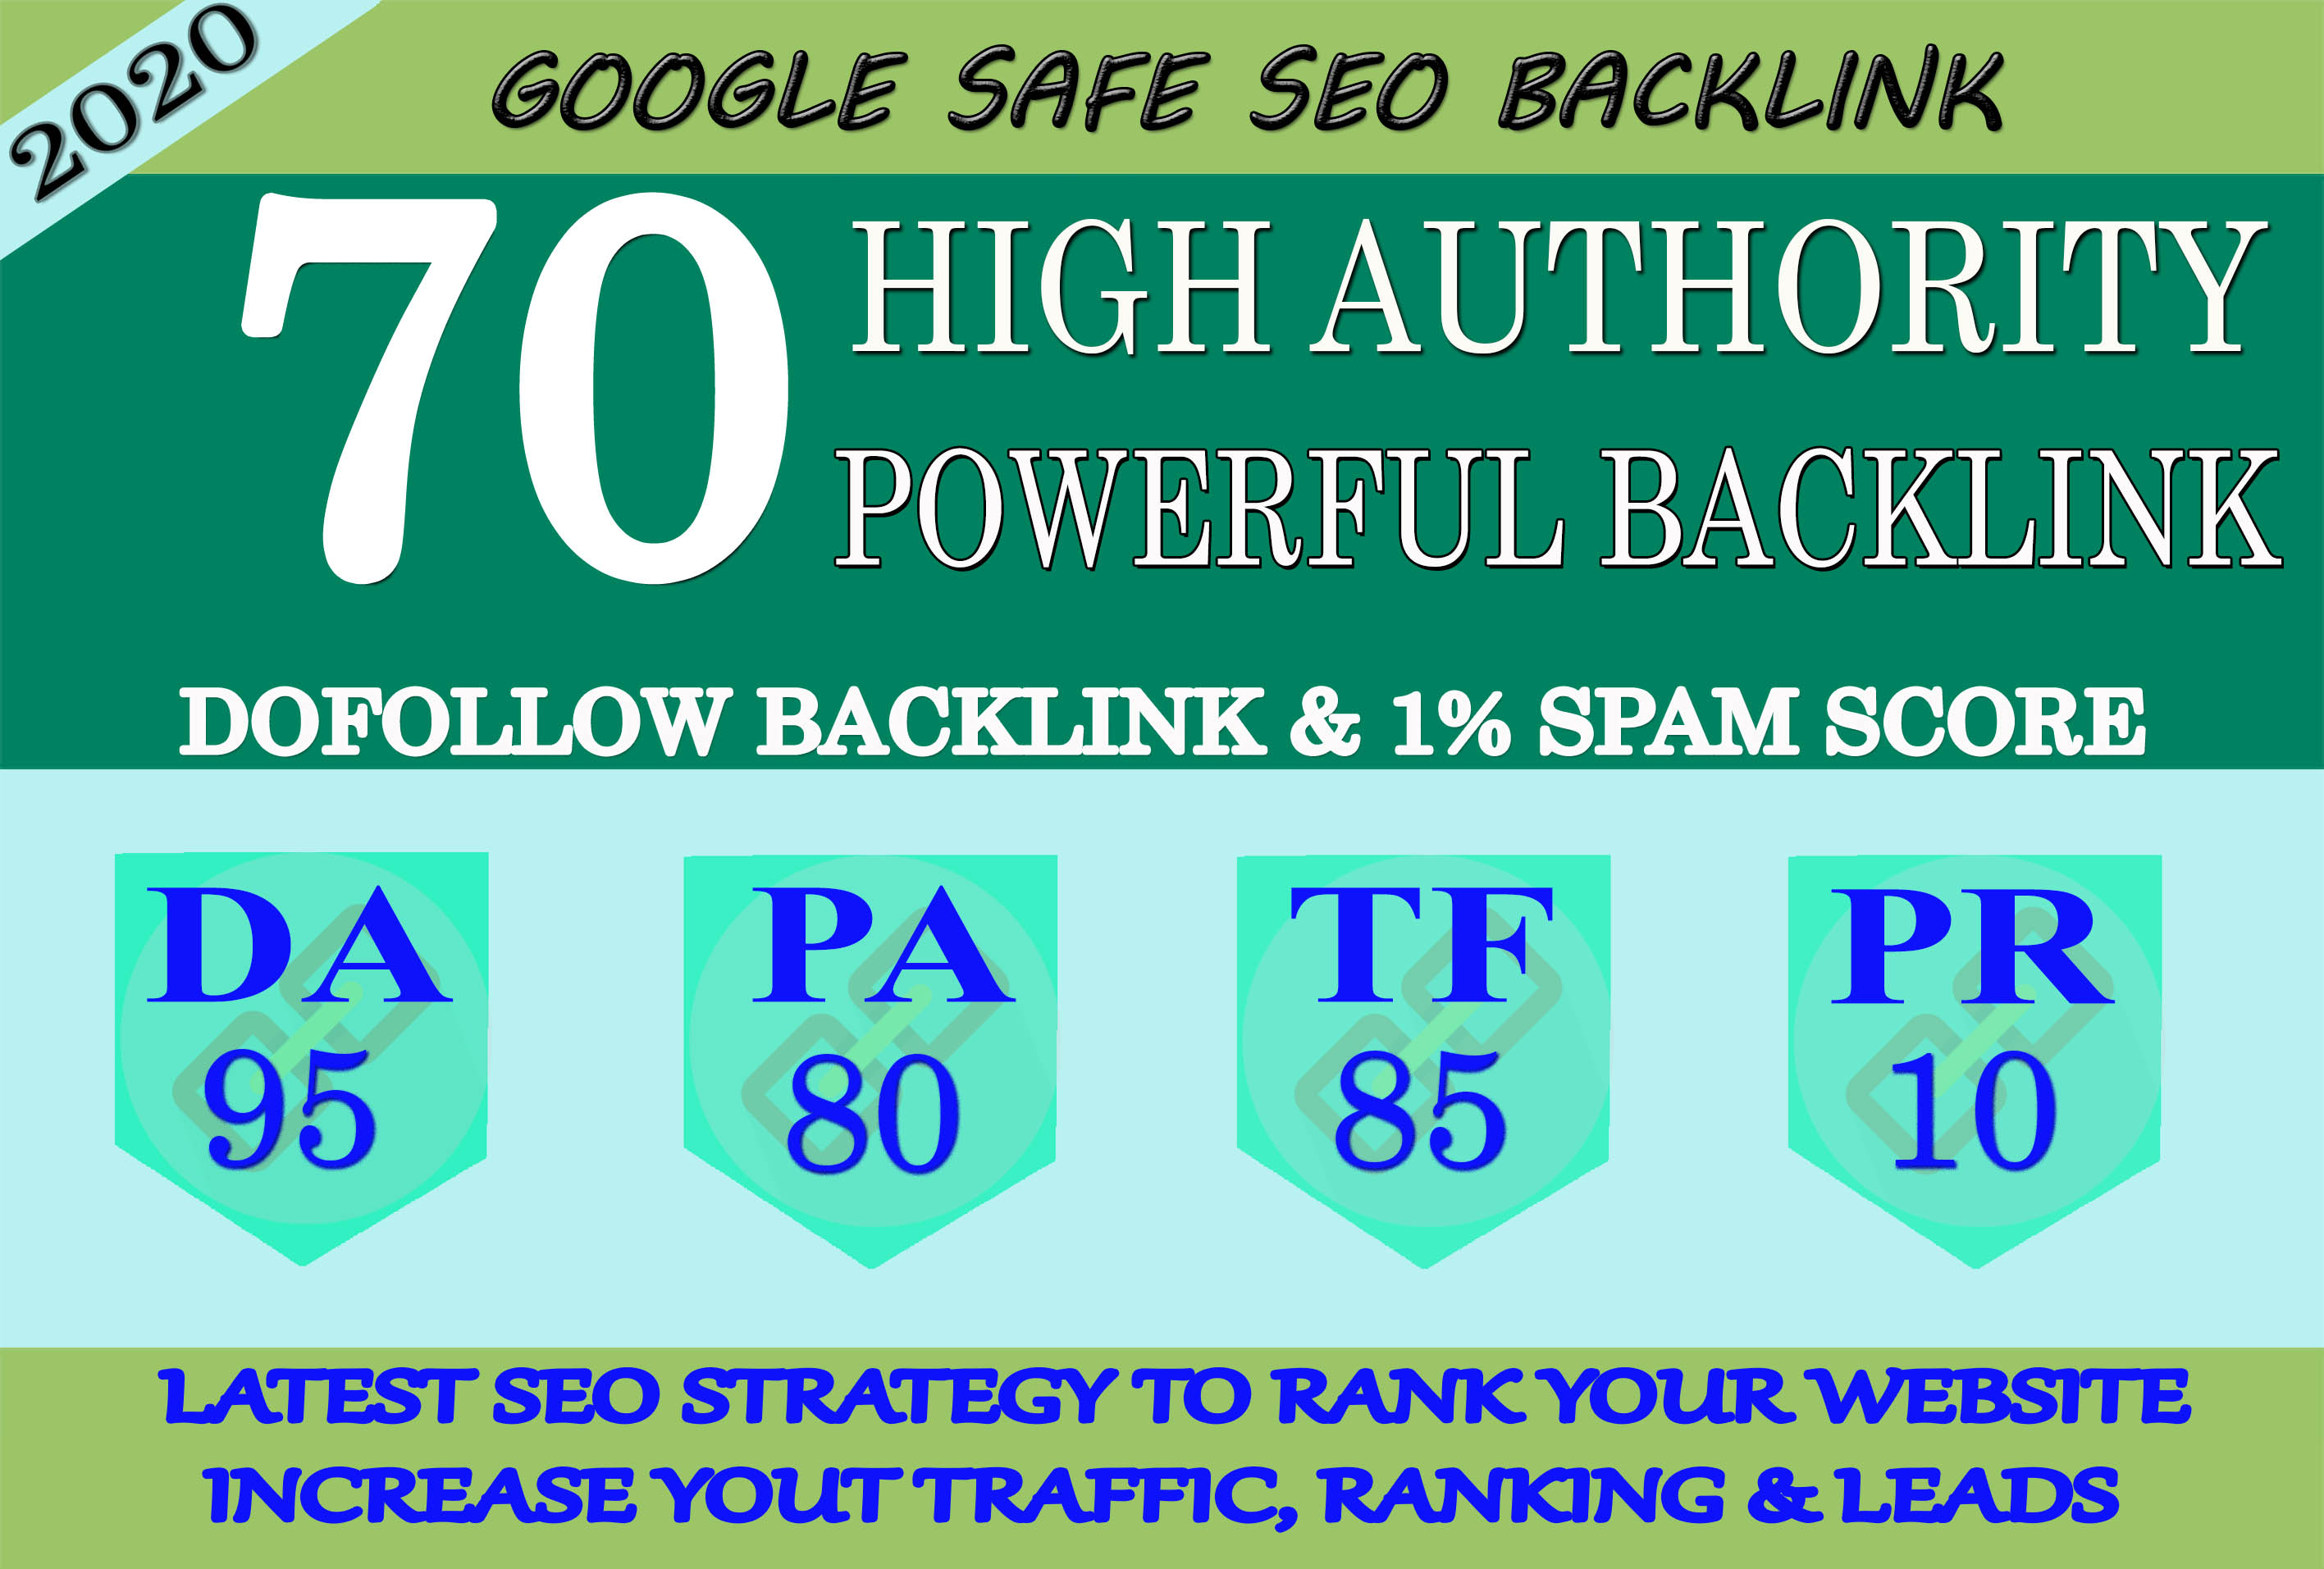 I Will Manually Do 70 High Quality PR10 BackIinks On DA-95 Sites To RANK Your Website